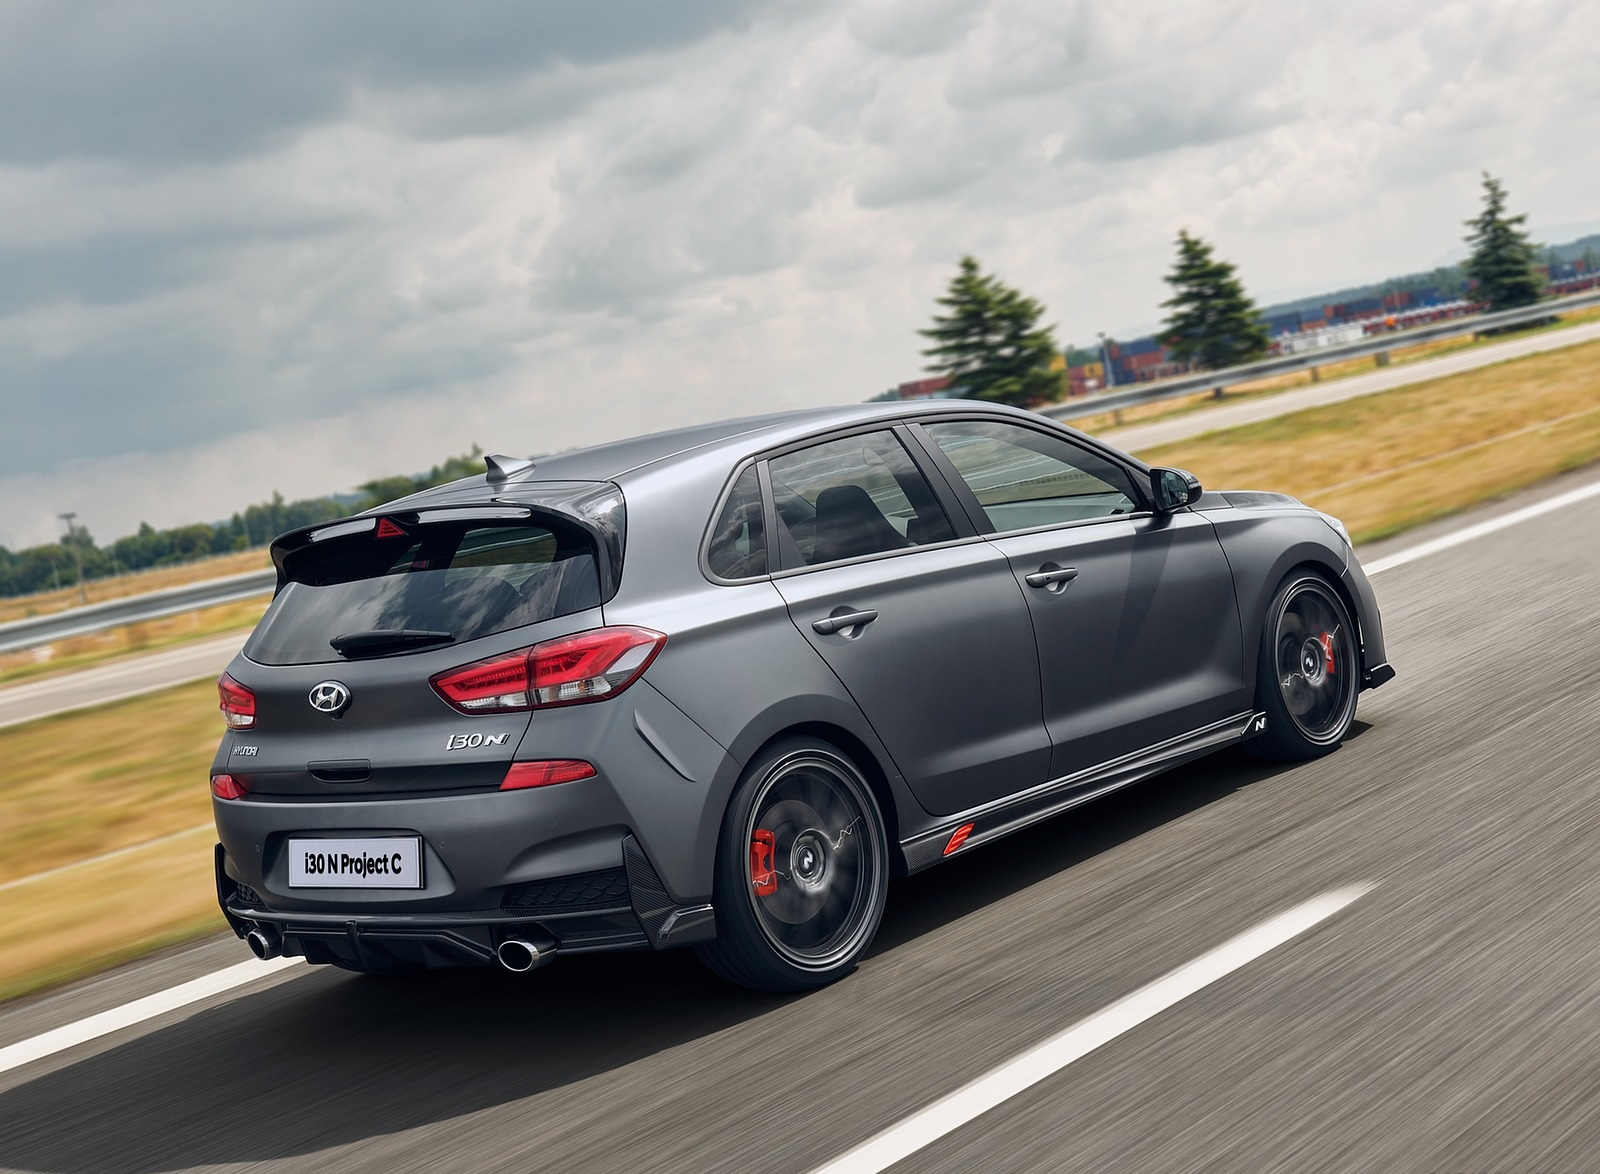 2020 Hyundai i30 N Project C Rear Three-Quarter Wallpapers (8)